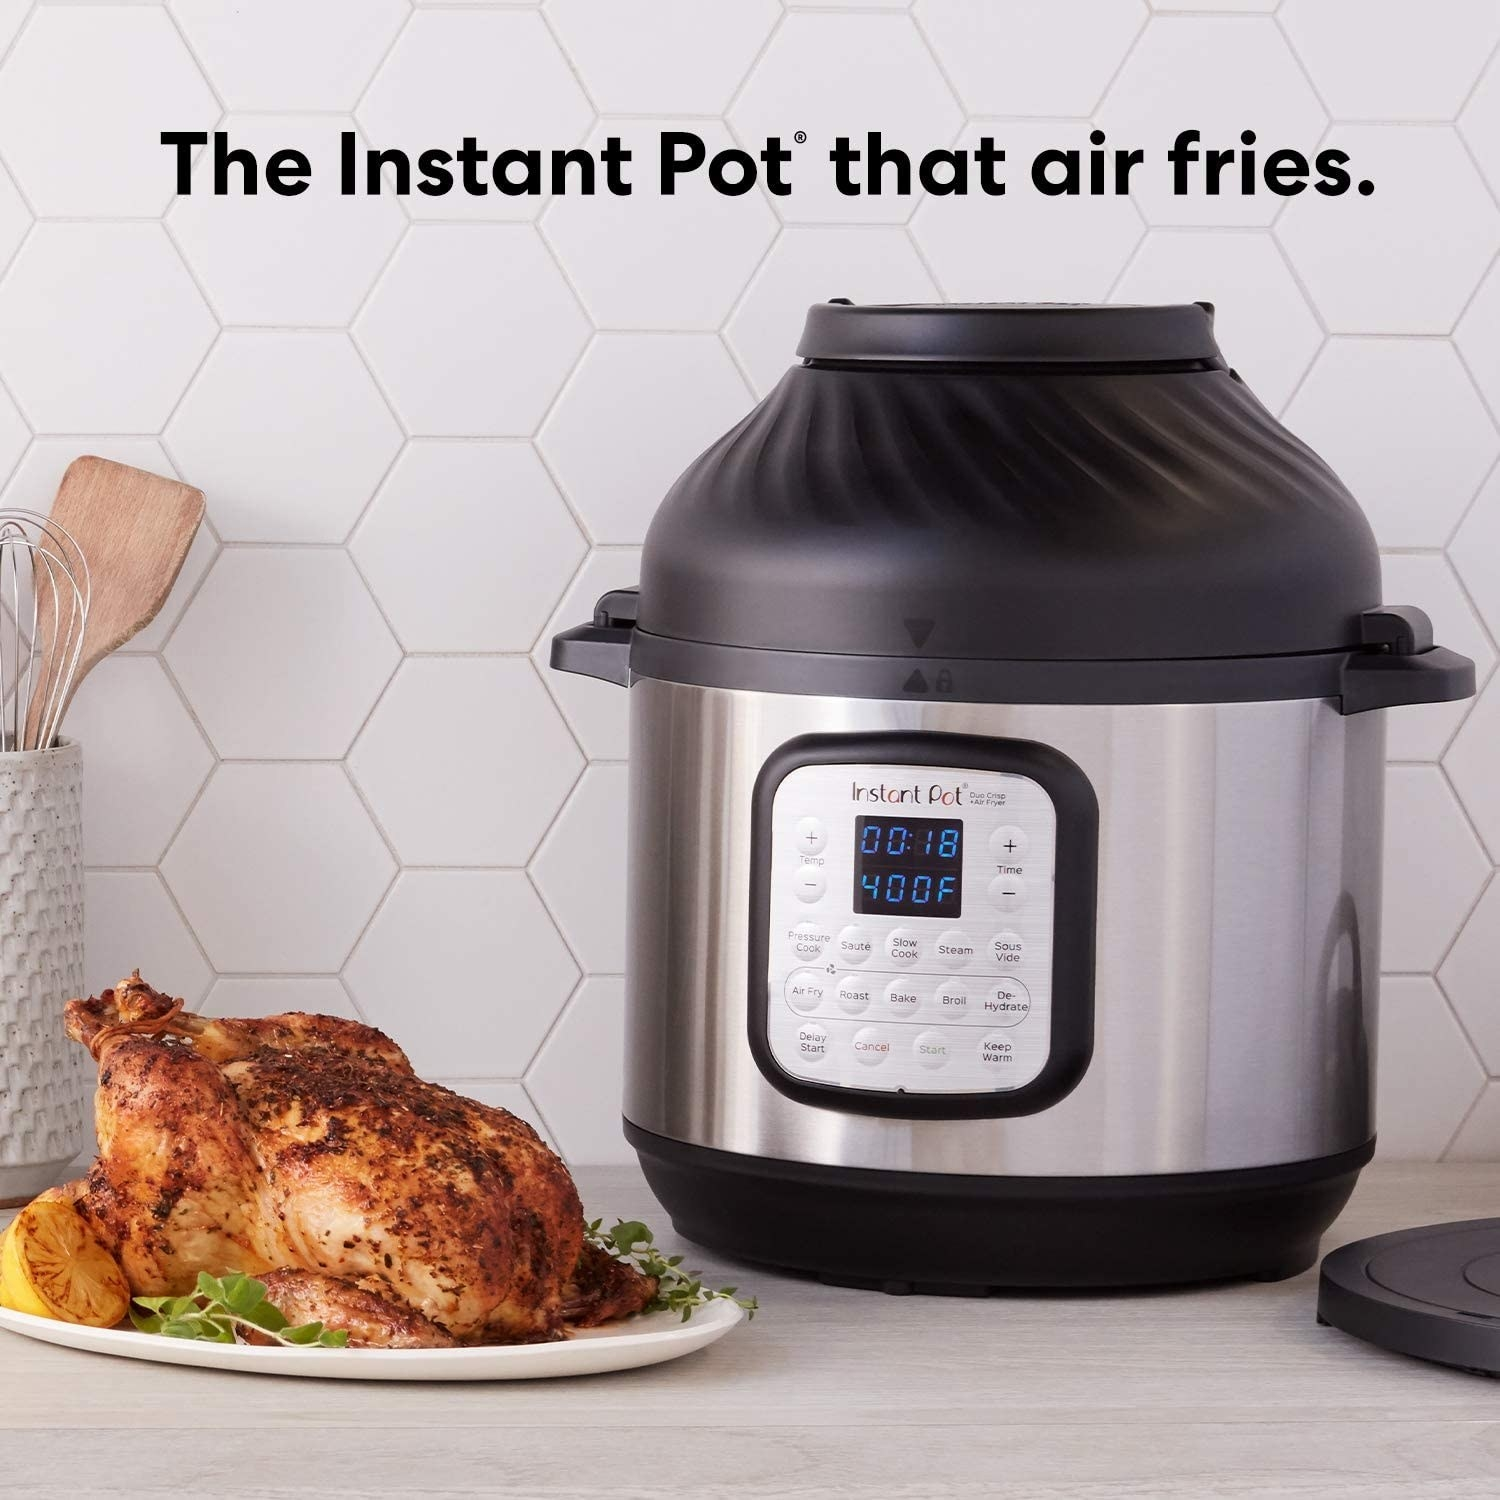 The Instant Pot next to a cooked chicken